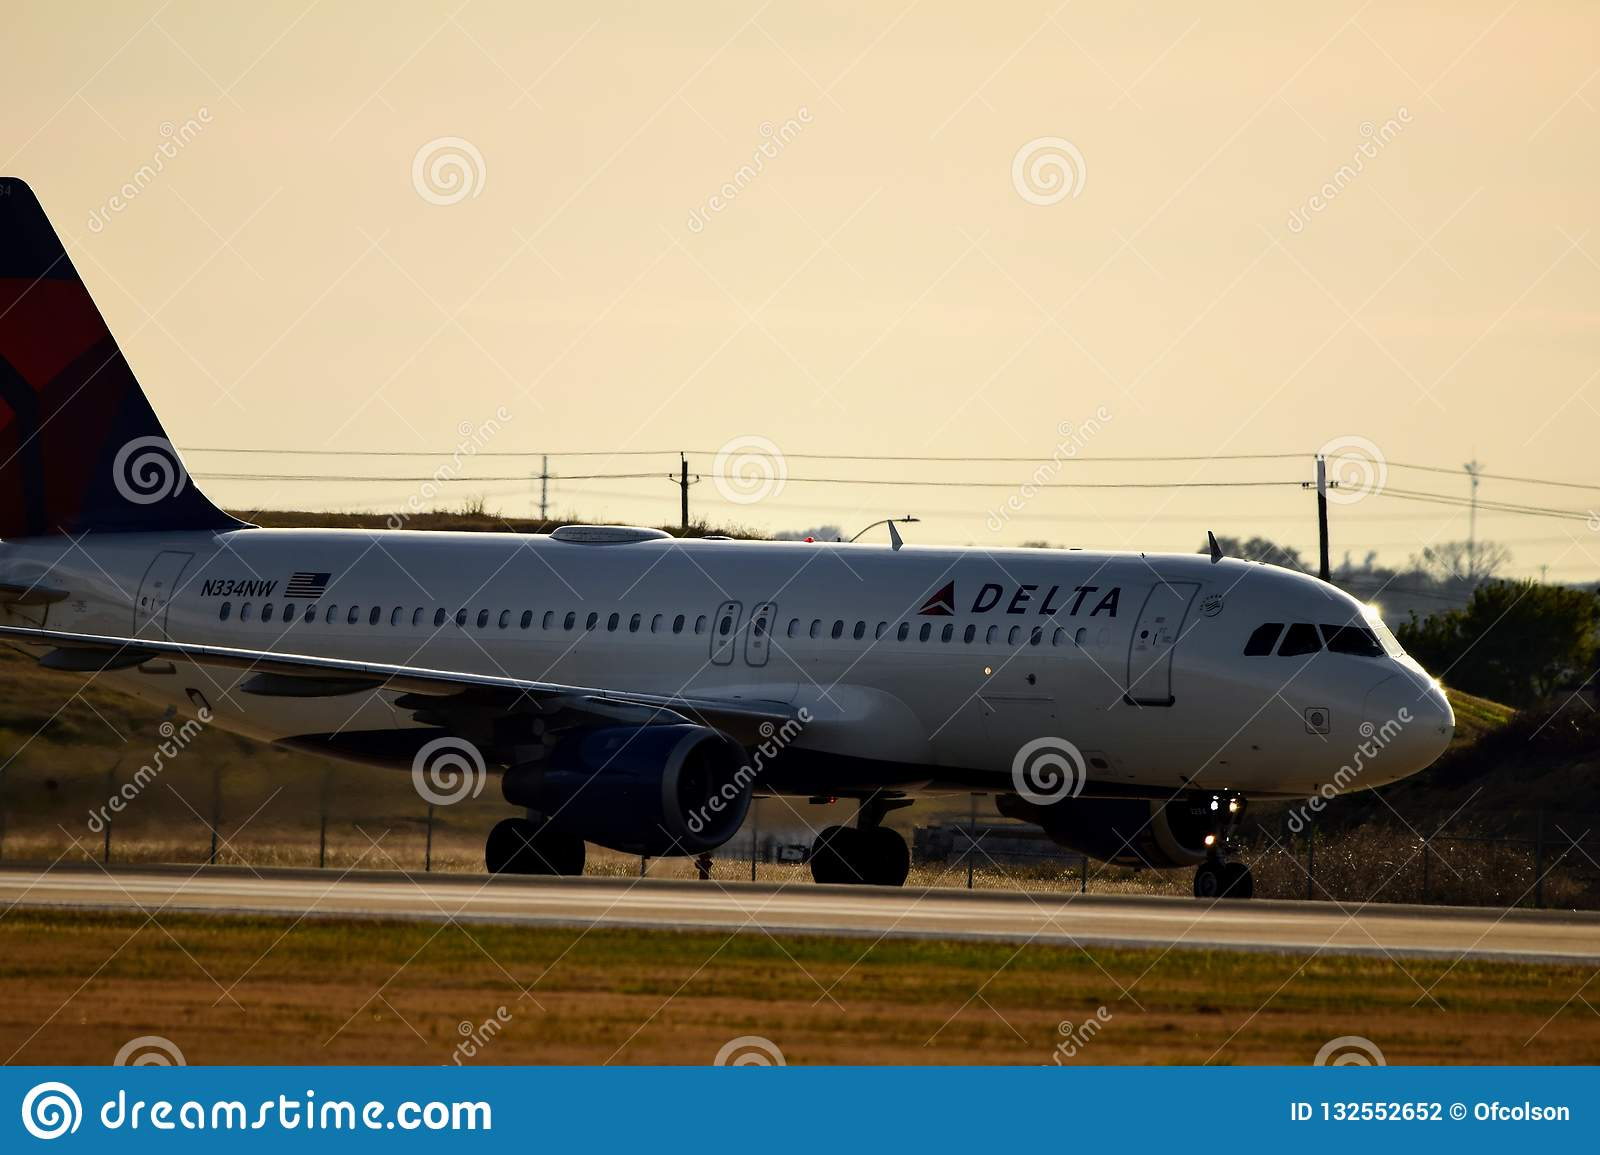 What Color Is Delta Airlines